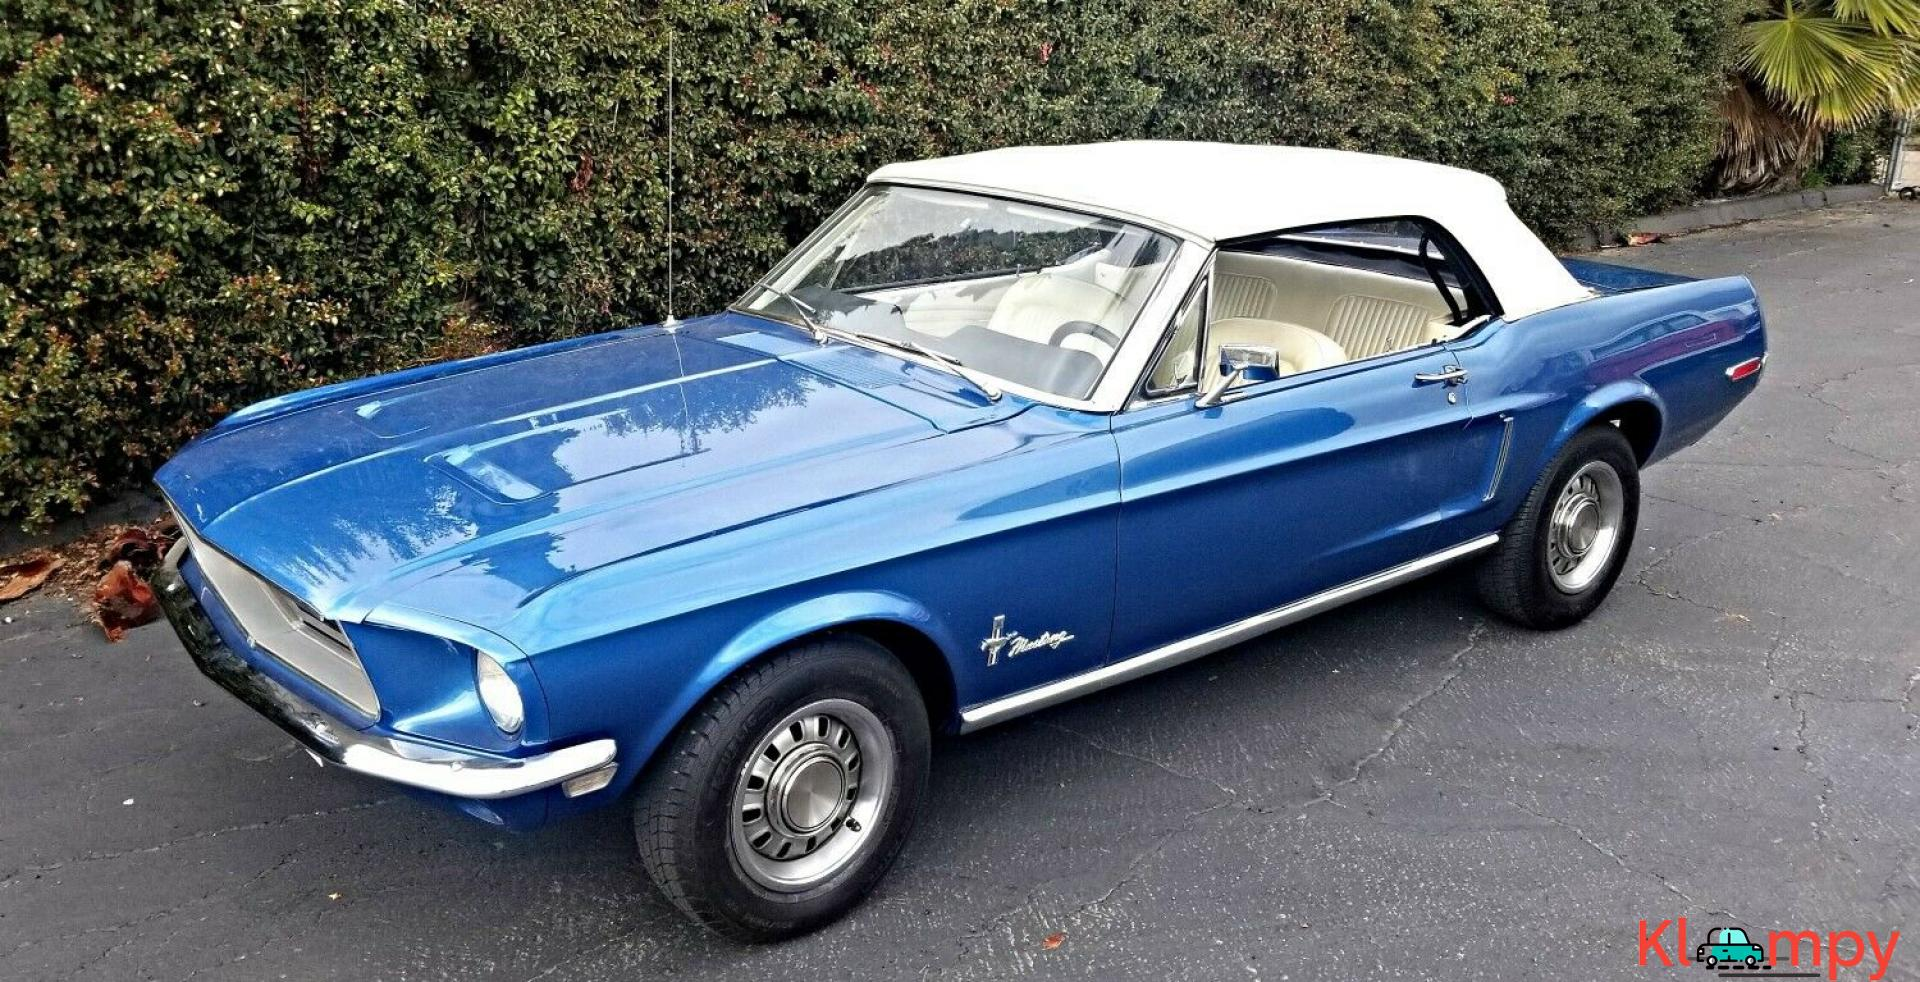 1968 Ford Mustang Convertible Restored 302 Automatic - Kloompy